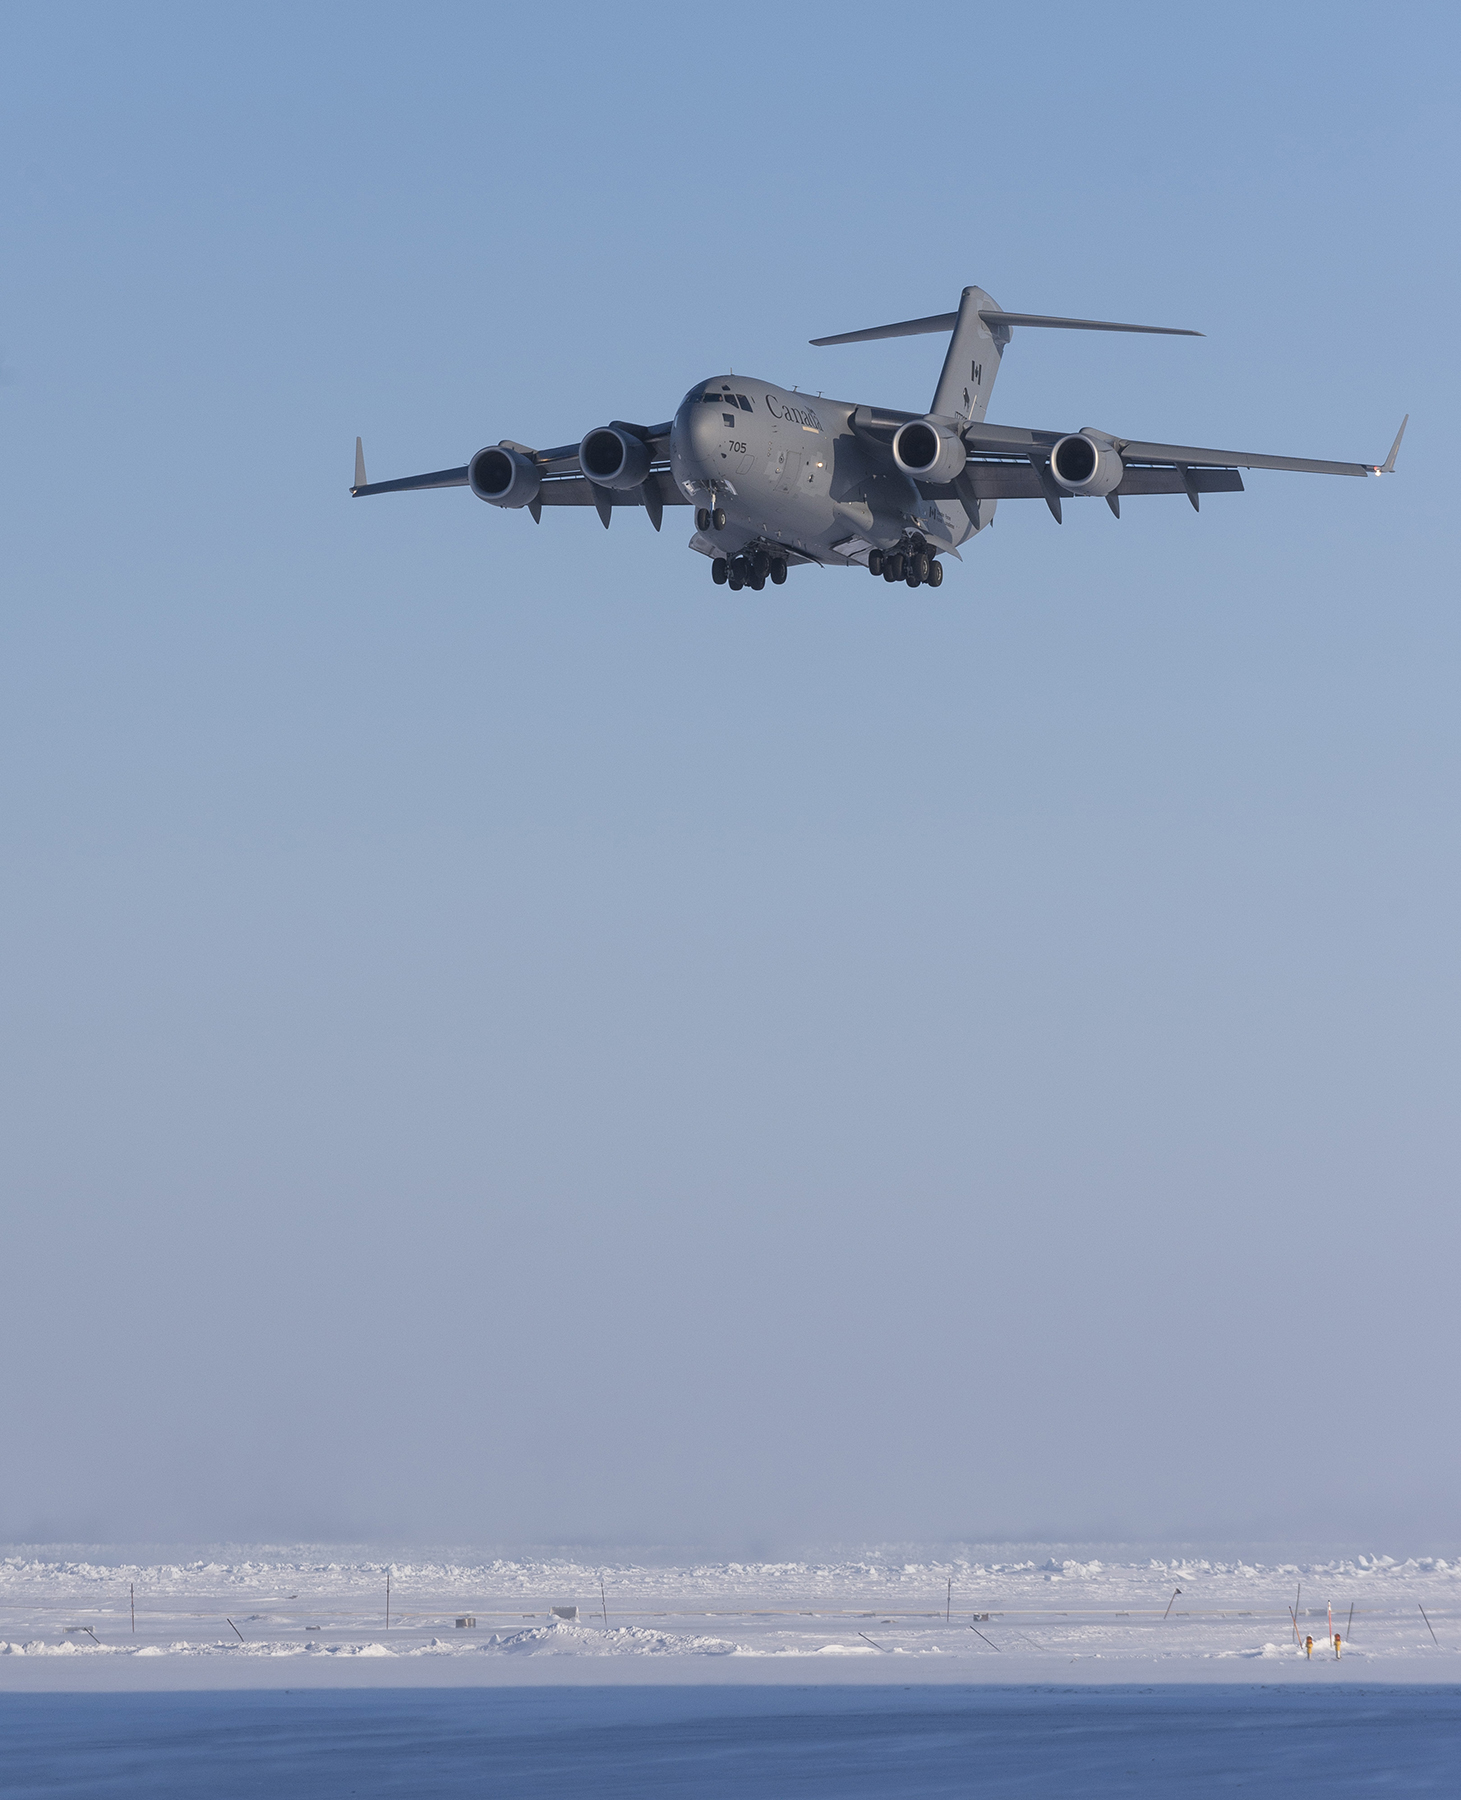 An RCAF CC-177 Globemaster aircraft on final approach at the airport in Hall Beach, Nunavut, to deliver personnel and equipment on March 5, 2017, during Operation Nunalivut 17. PHOTO: Sergeant Jean-François Lauzé, PA01-2017-0054-101